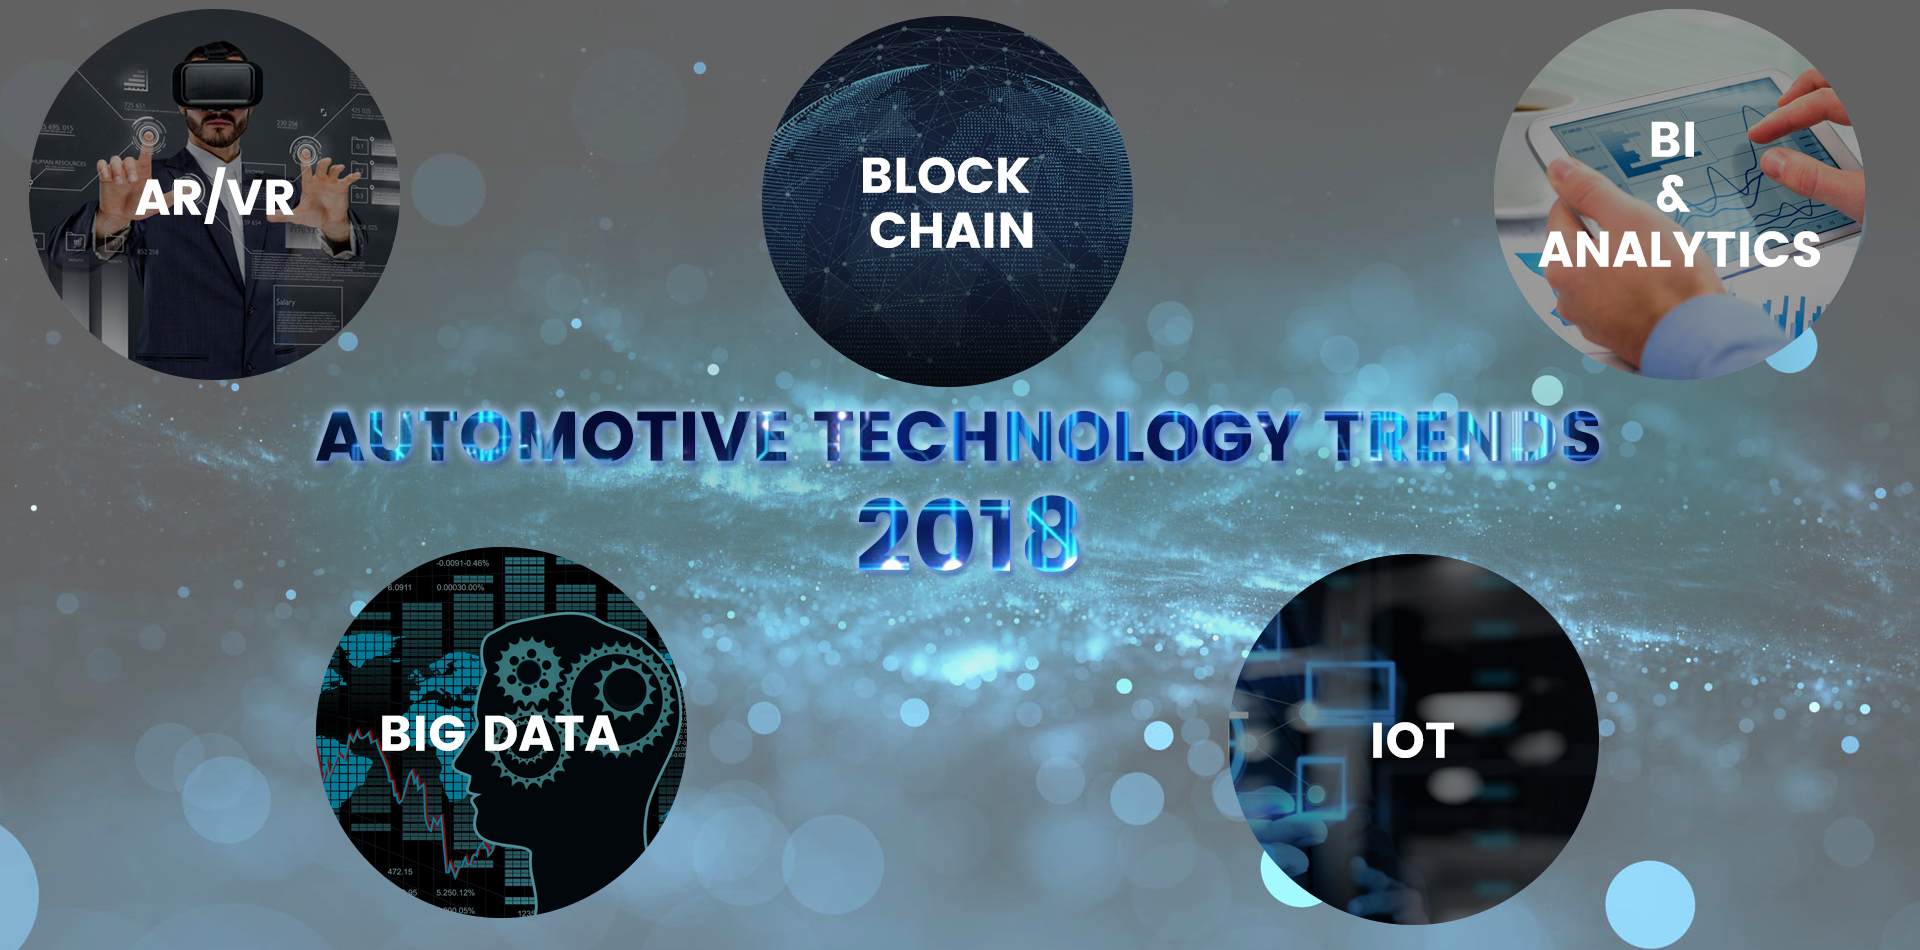 Top 5 Automotive Technology Trends in 2018